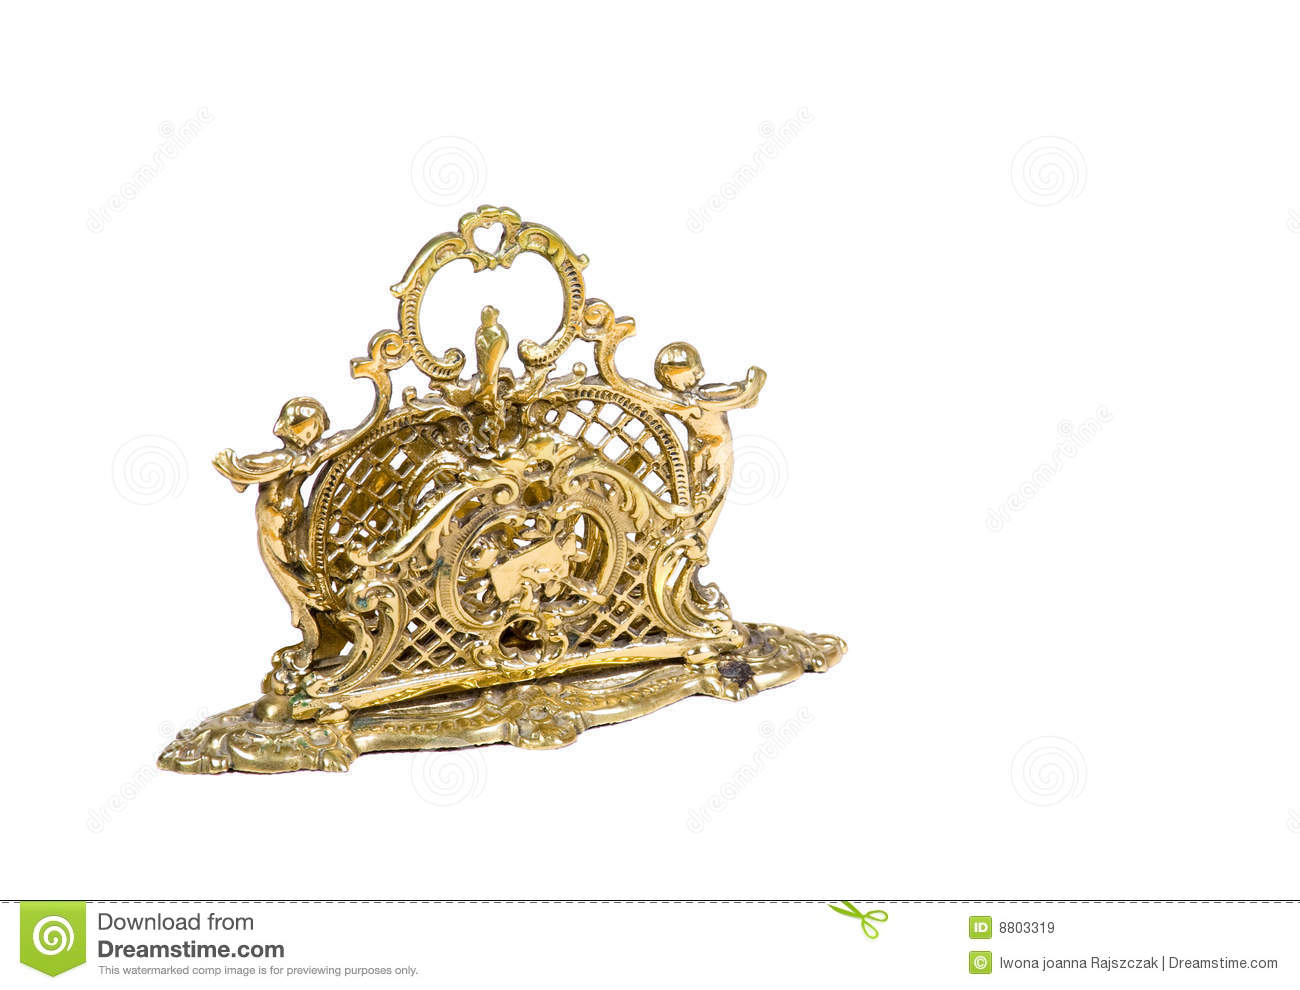 Old brassy object royalty free stock images image 8803319 for Old objects